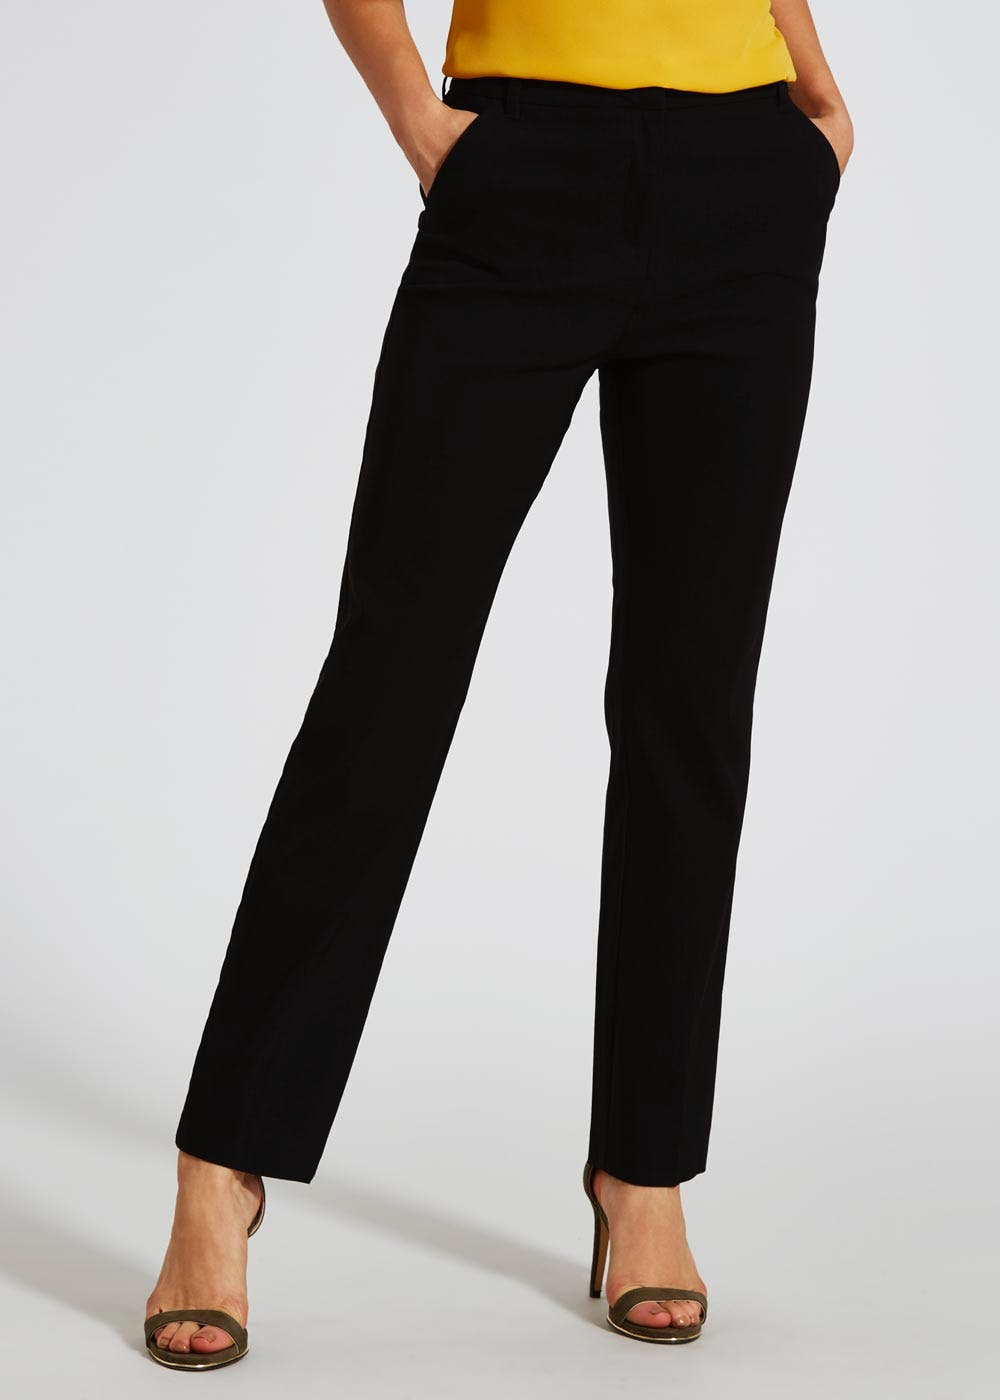 Bengaline Slim Fit Trousers 29 Inch Leg Black Matalan